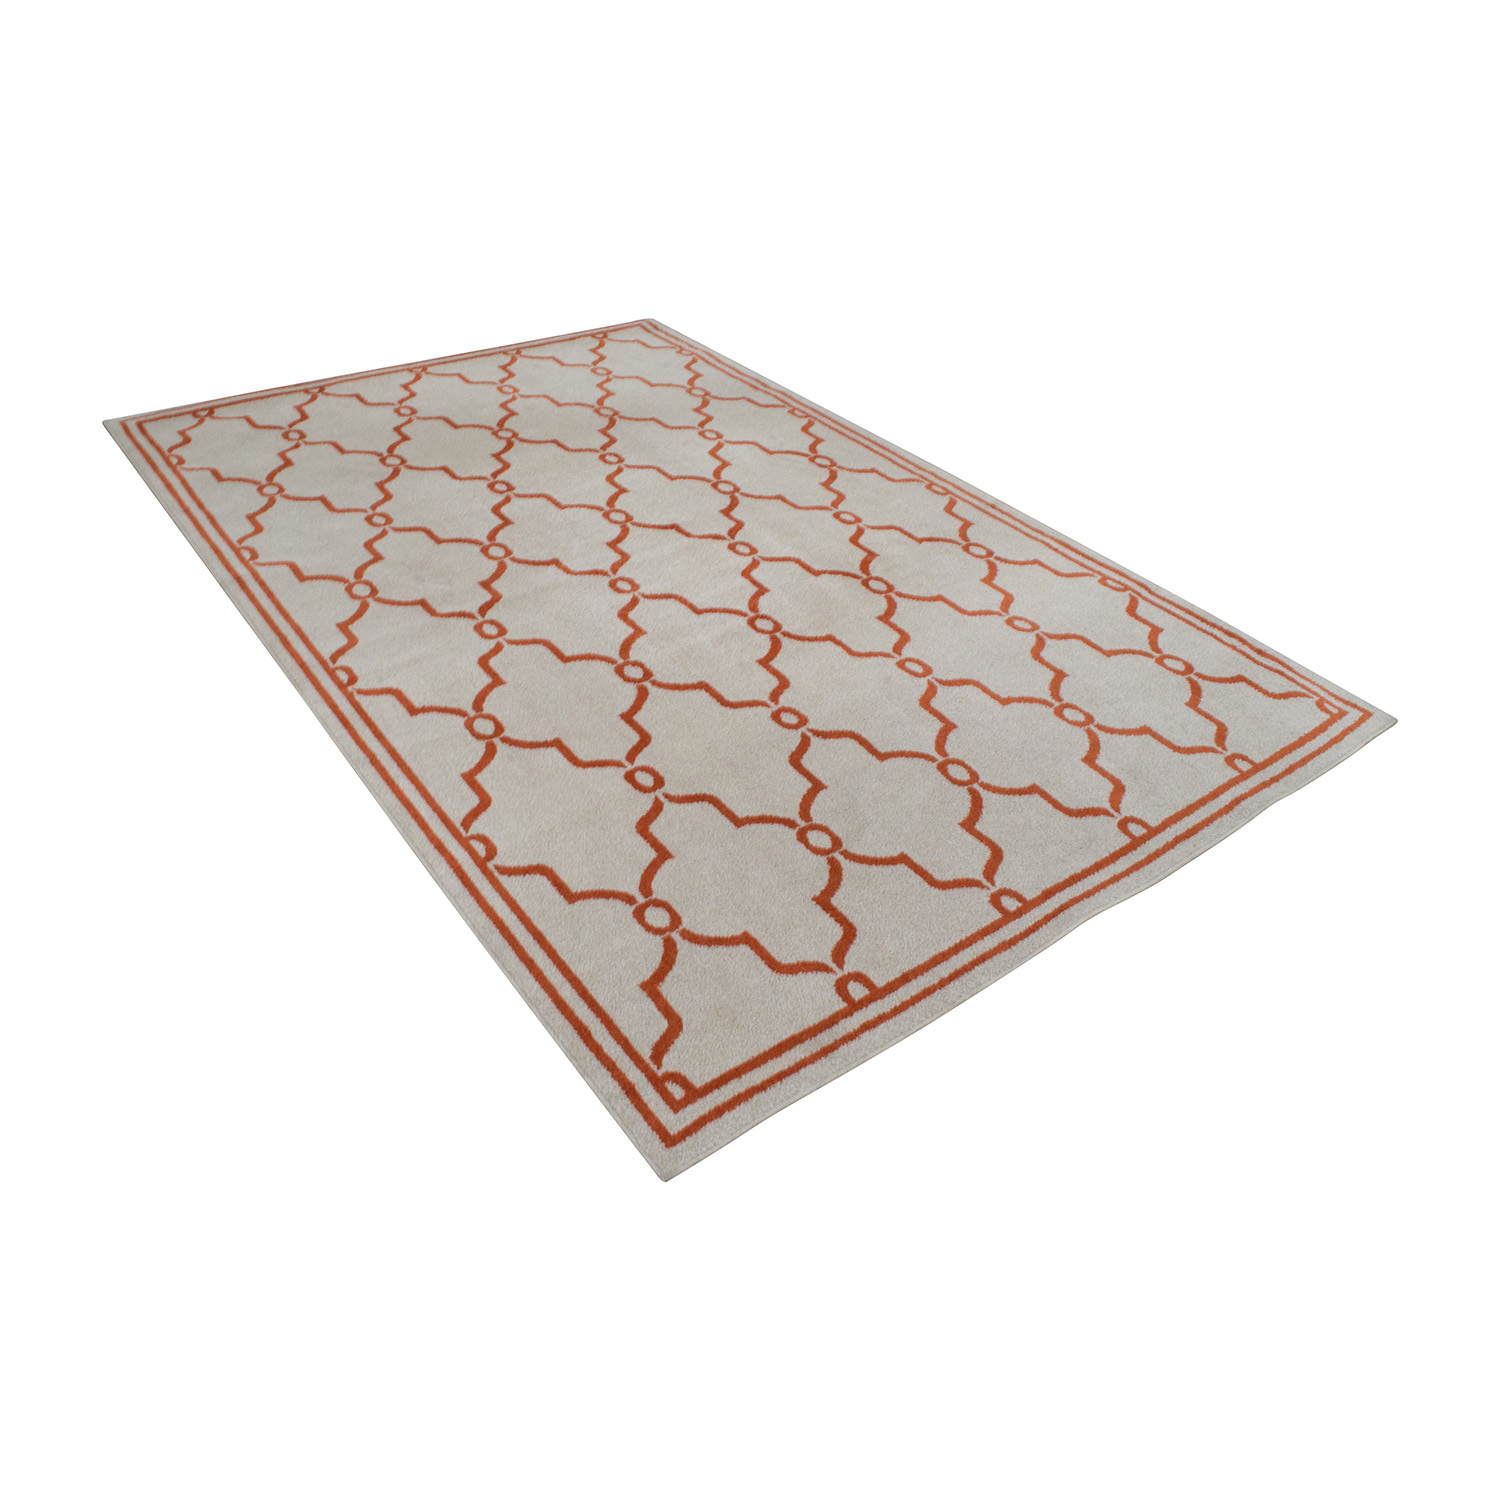 Safavieh Safavieh Amherst Beige and Orange Indoor or Outdoor Rug Decor